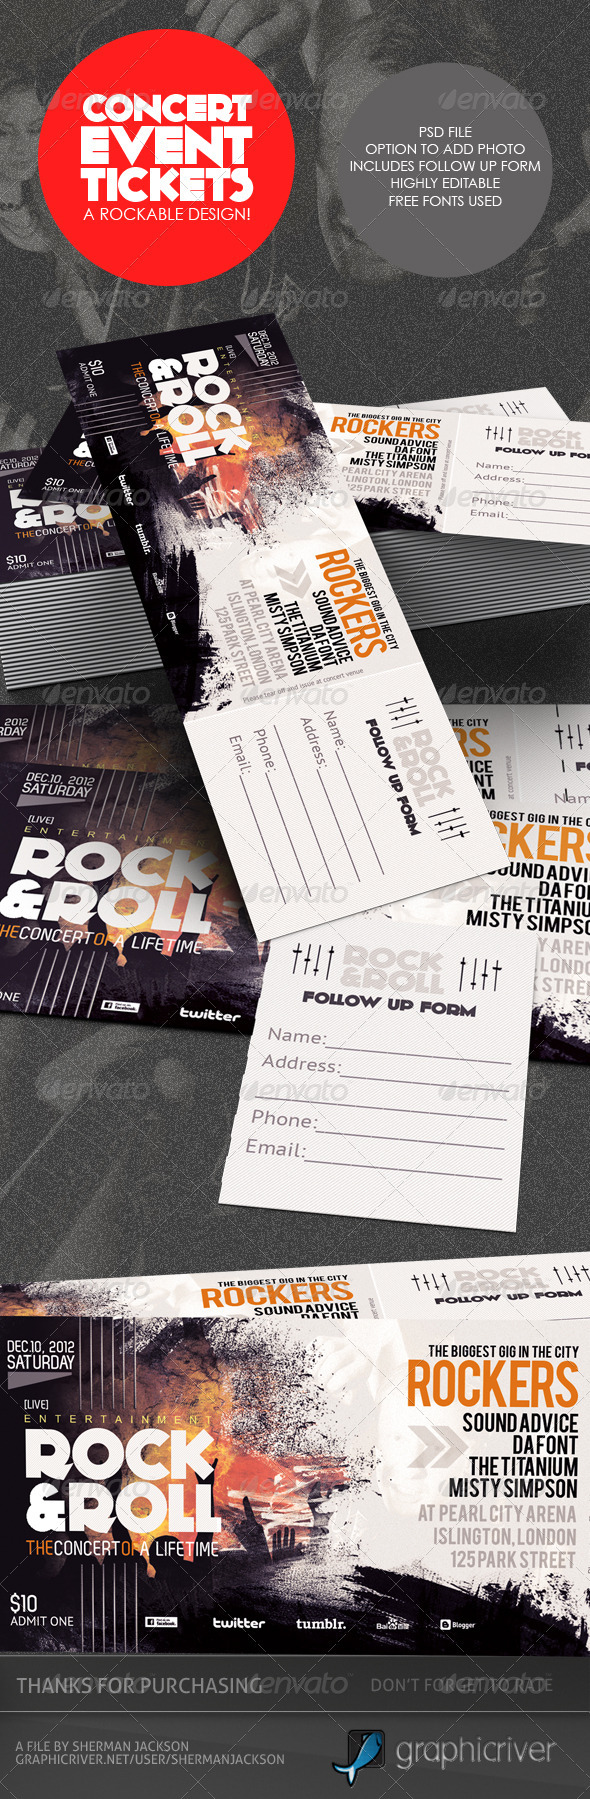 GraphicRiver Concert & Event Tickets Passes 3471139